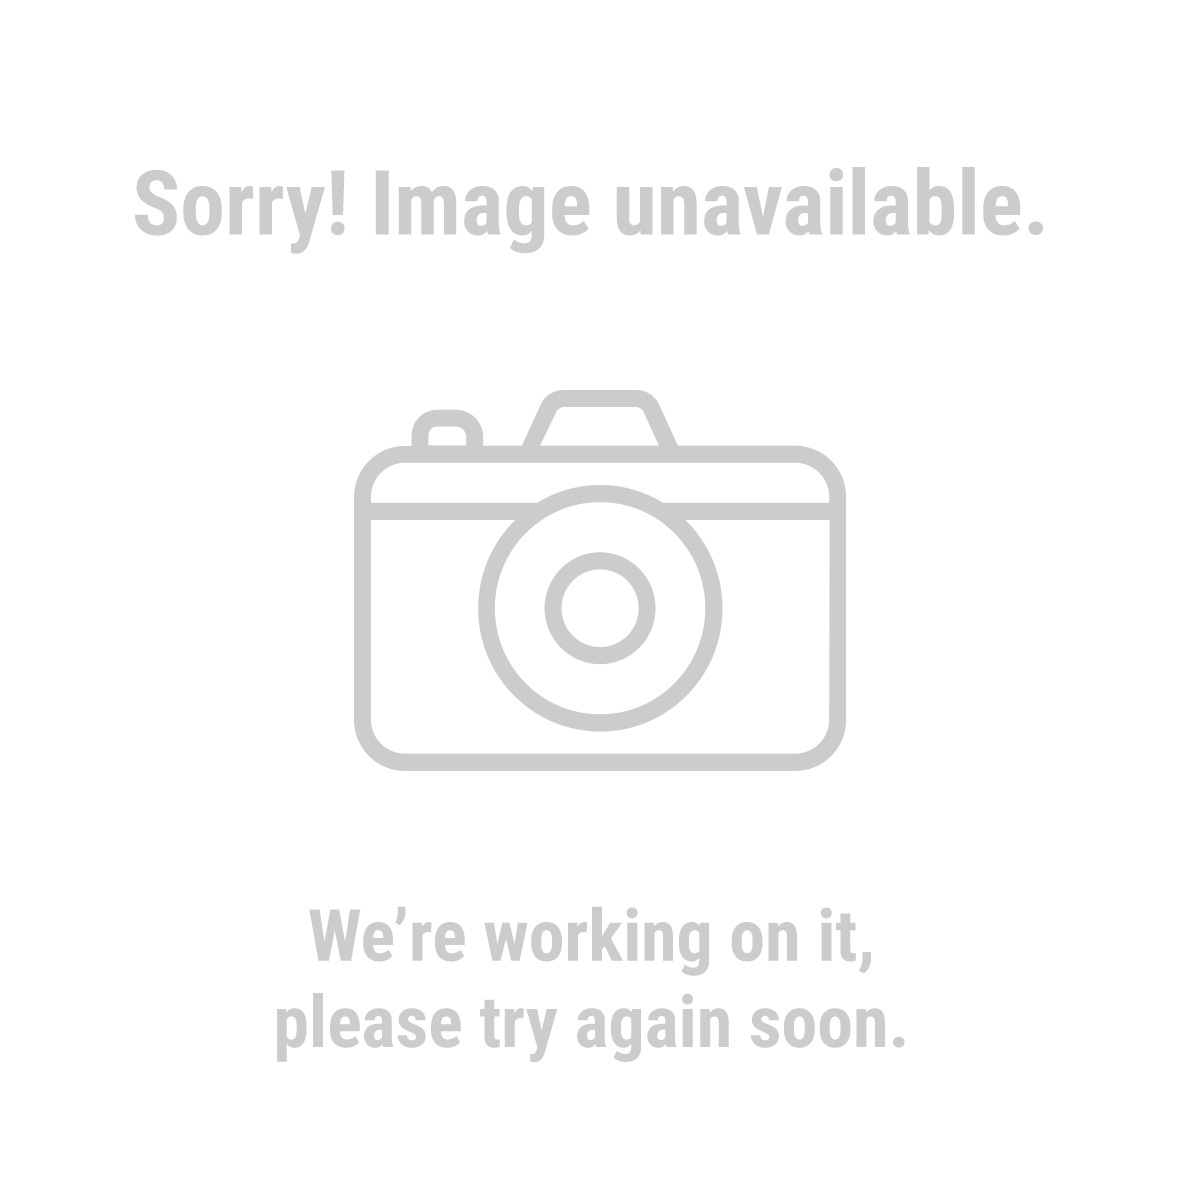 HFT 41449 25 Ft. x 12 Gauge Outdoor Extension Cord